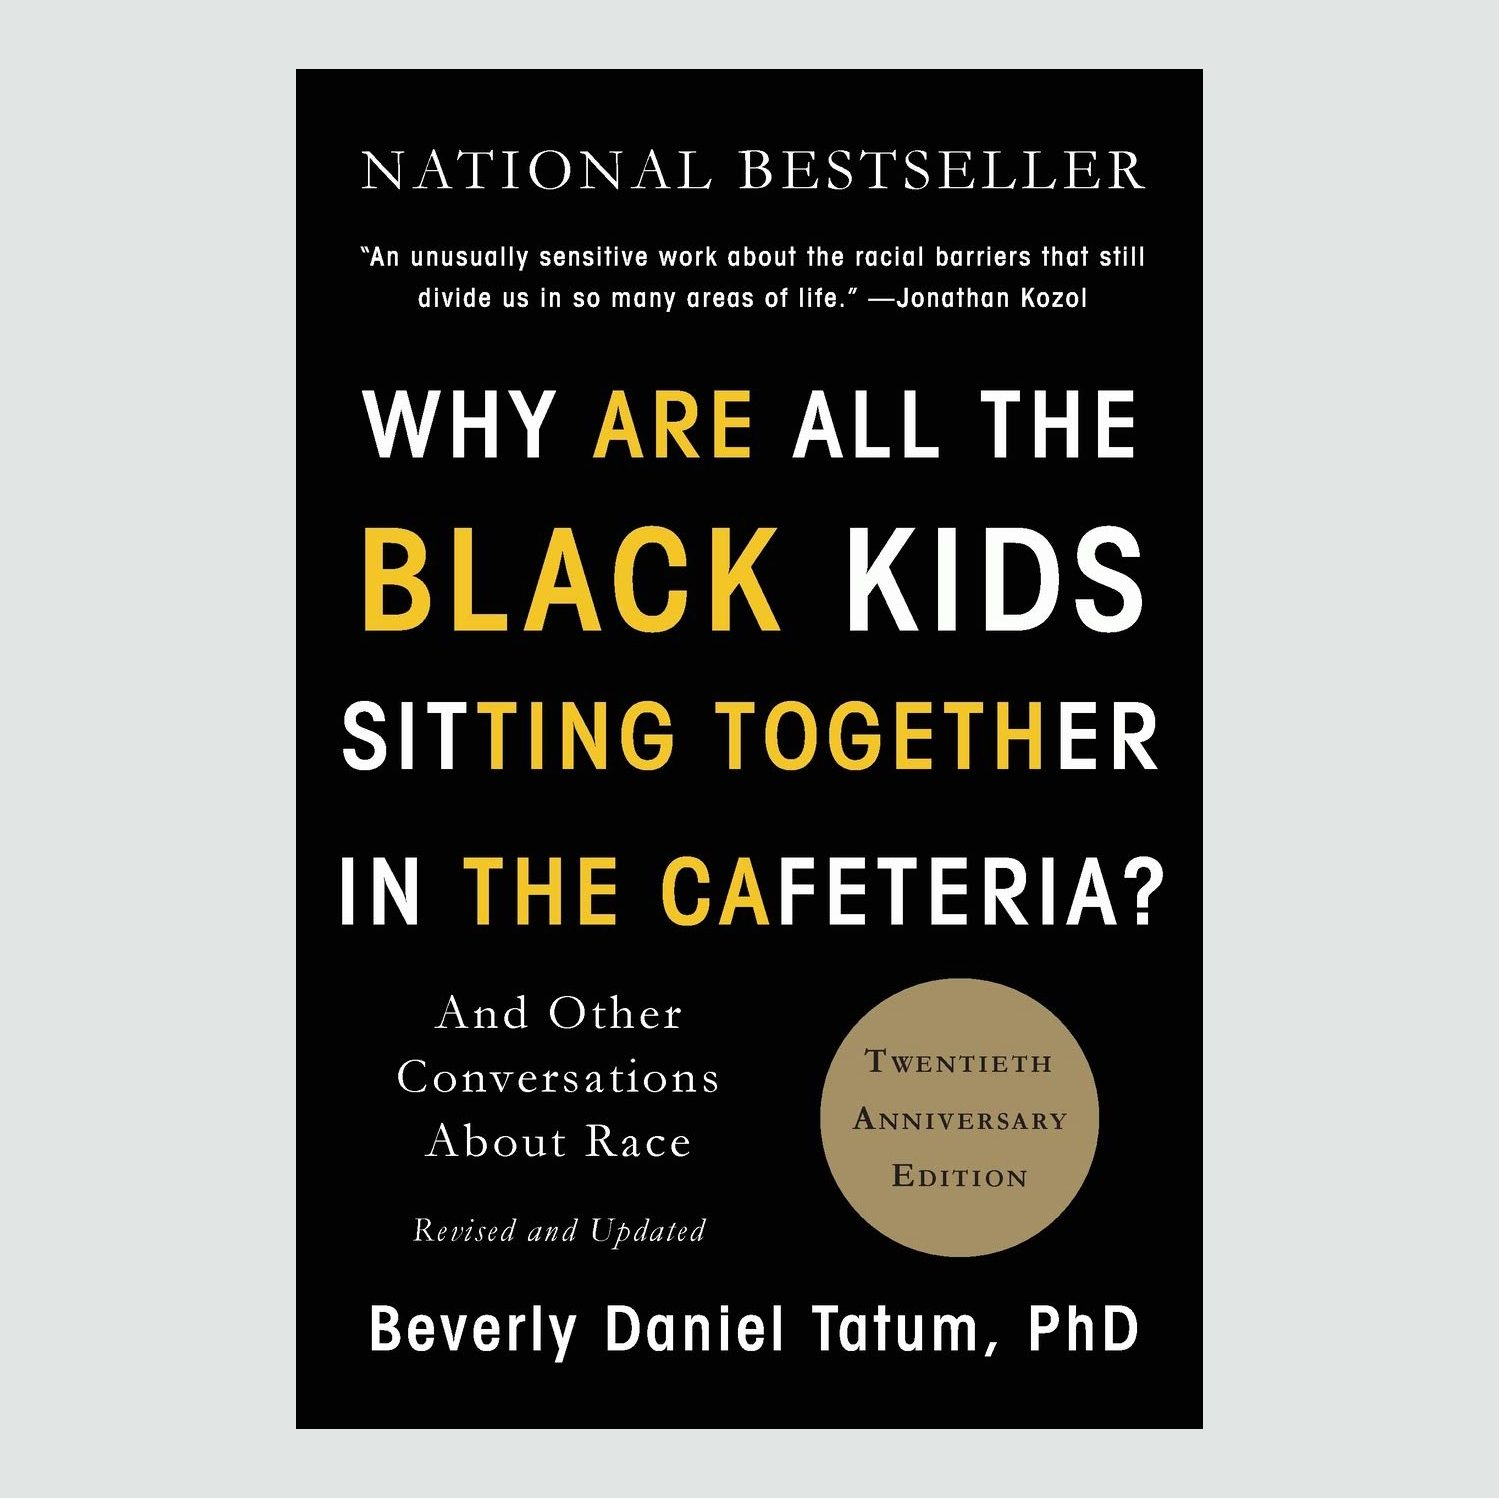 Why Are All the Black Kids Sitting Together in the Cafeteria? book